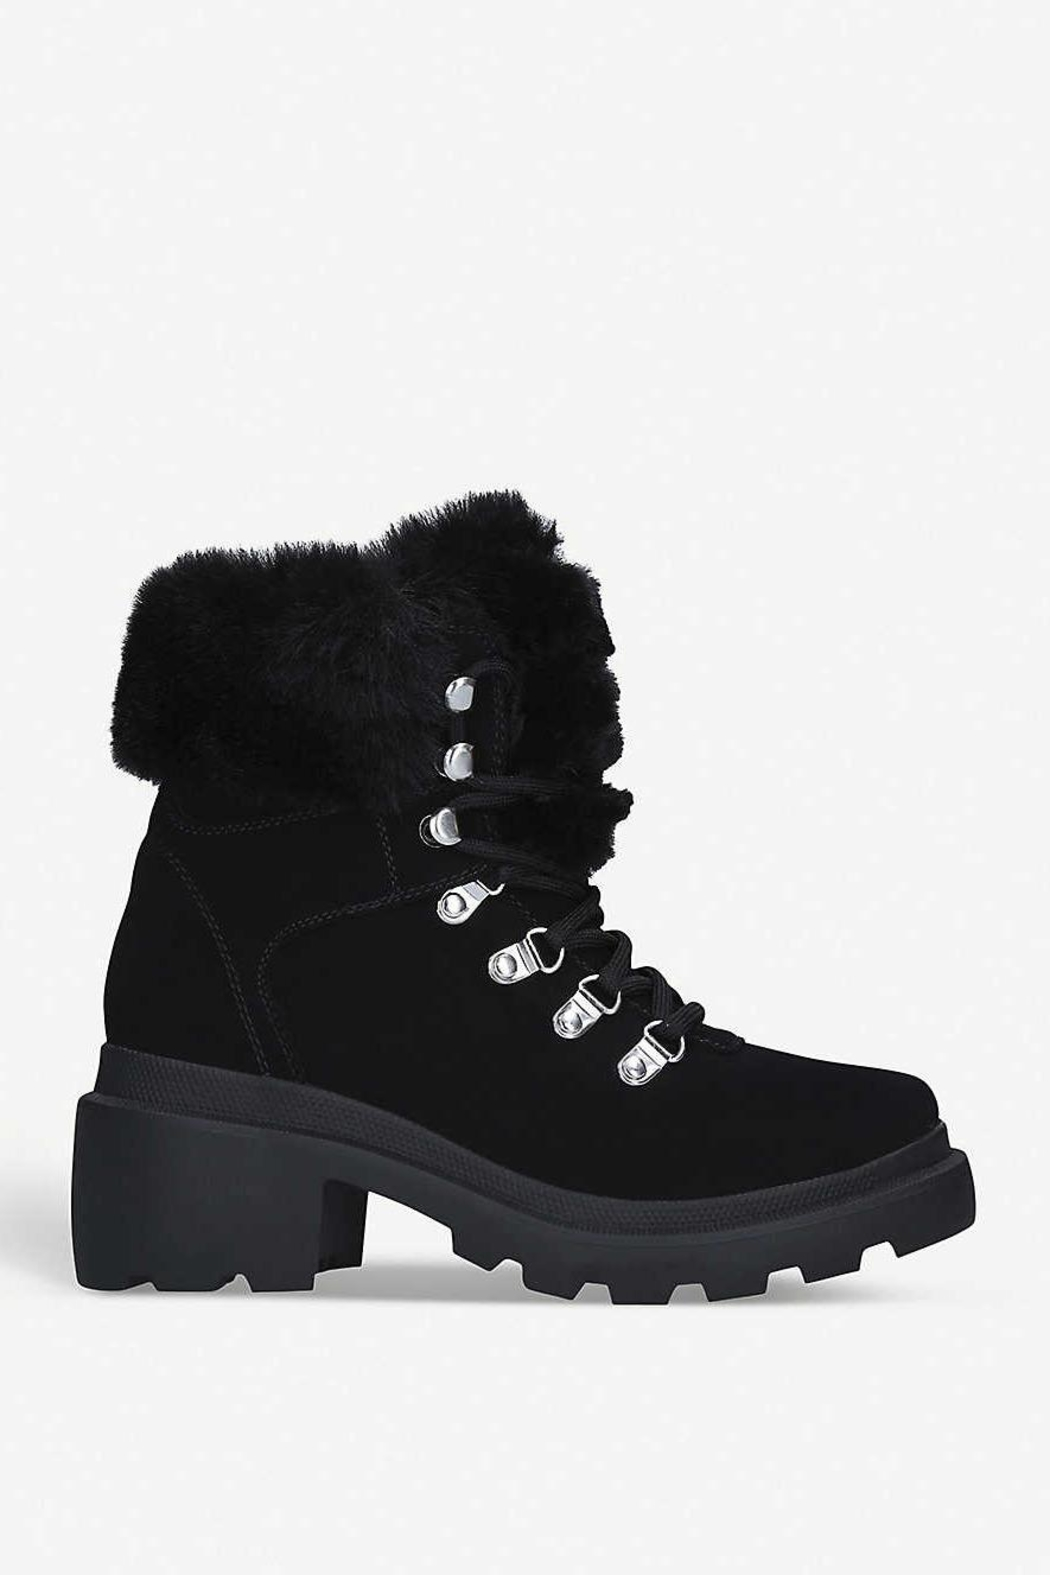 Kendall + Kylie Roan Fur Hiking Boot - Main Image